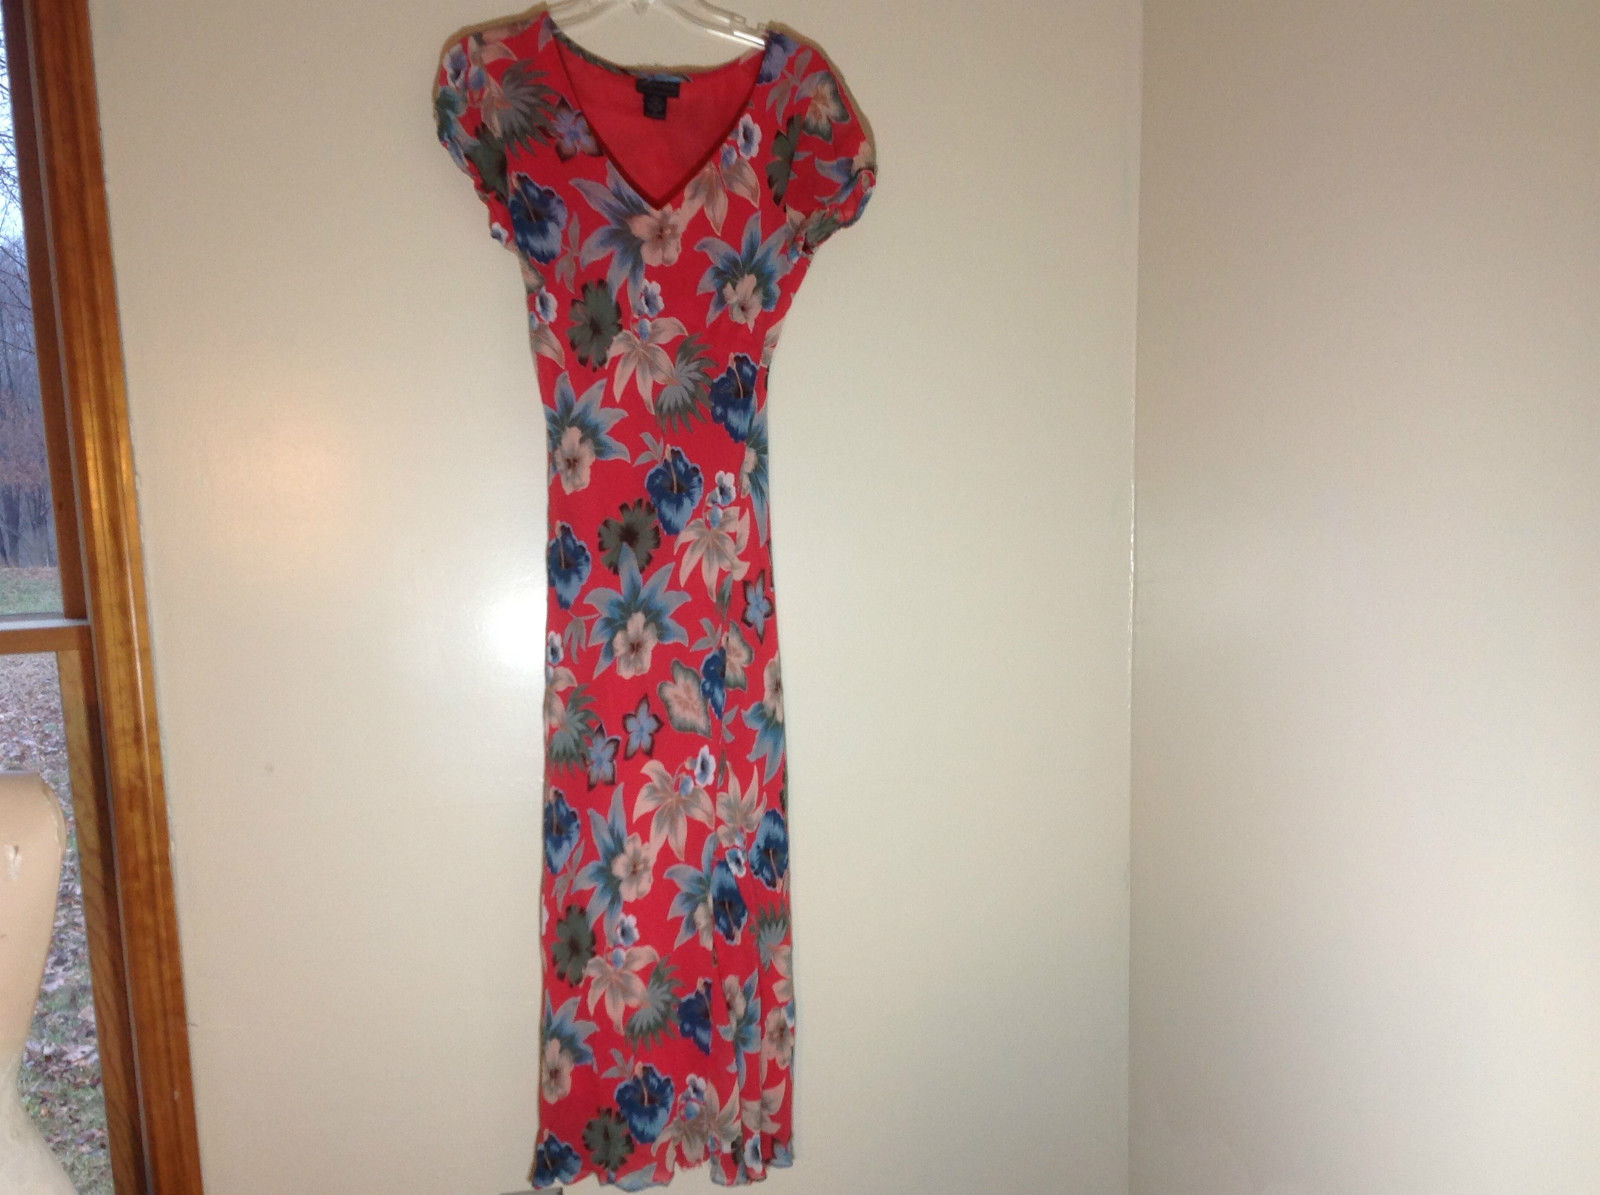 Orientique Red Maxi Dress with Blue Flowers Short Sleeve V-neck Size Medium